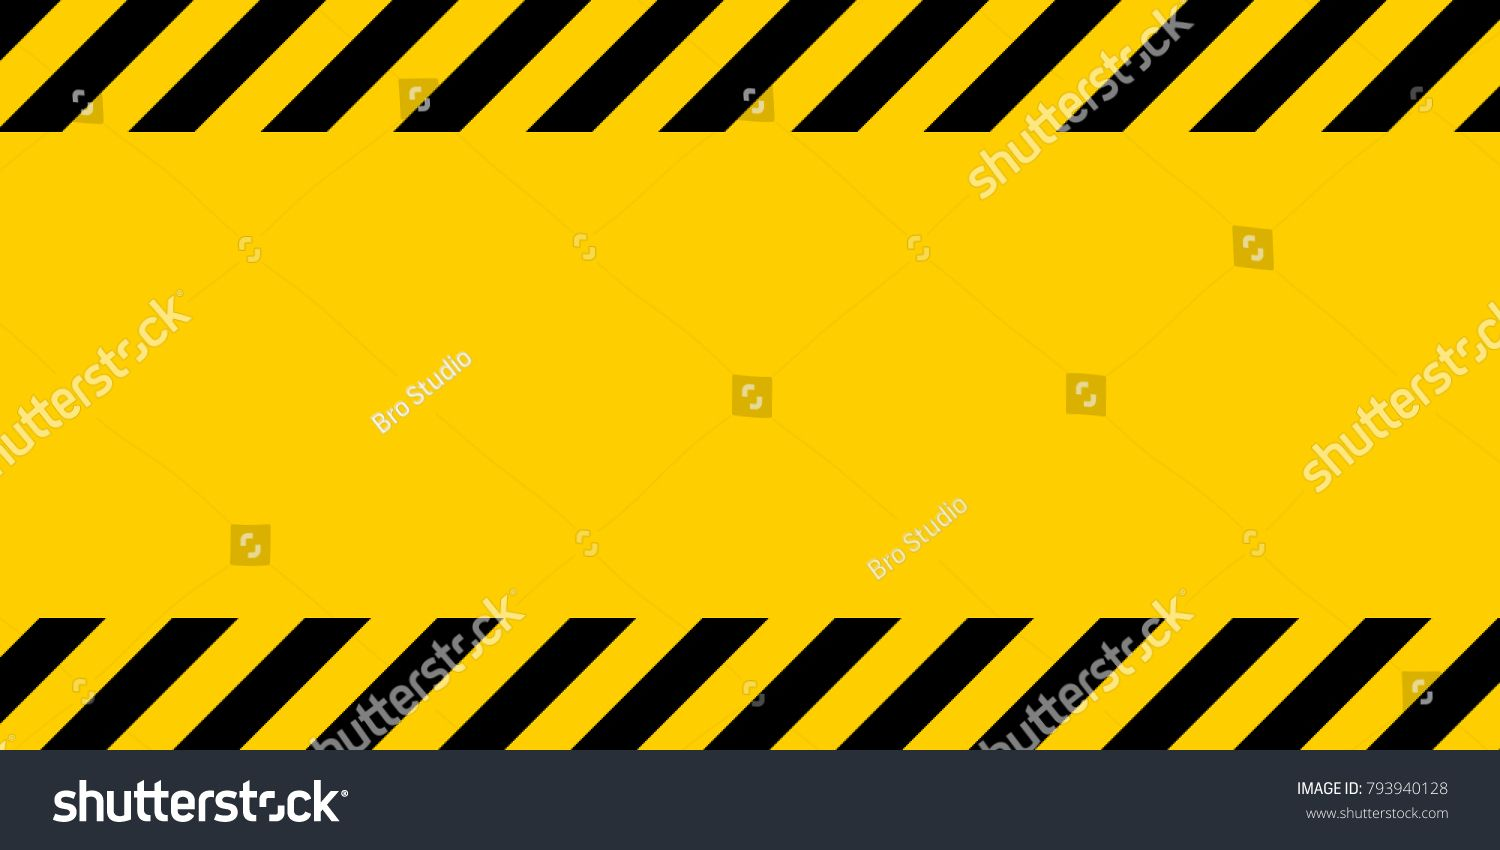 Black And Yellow Warning Line Striped Rectangular Background Yellow And Black Stripes On The Diagonal A Black N Yellow Material Design Background Yellow Line